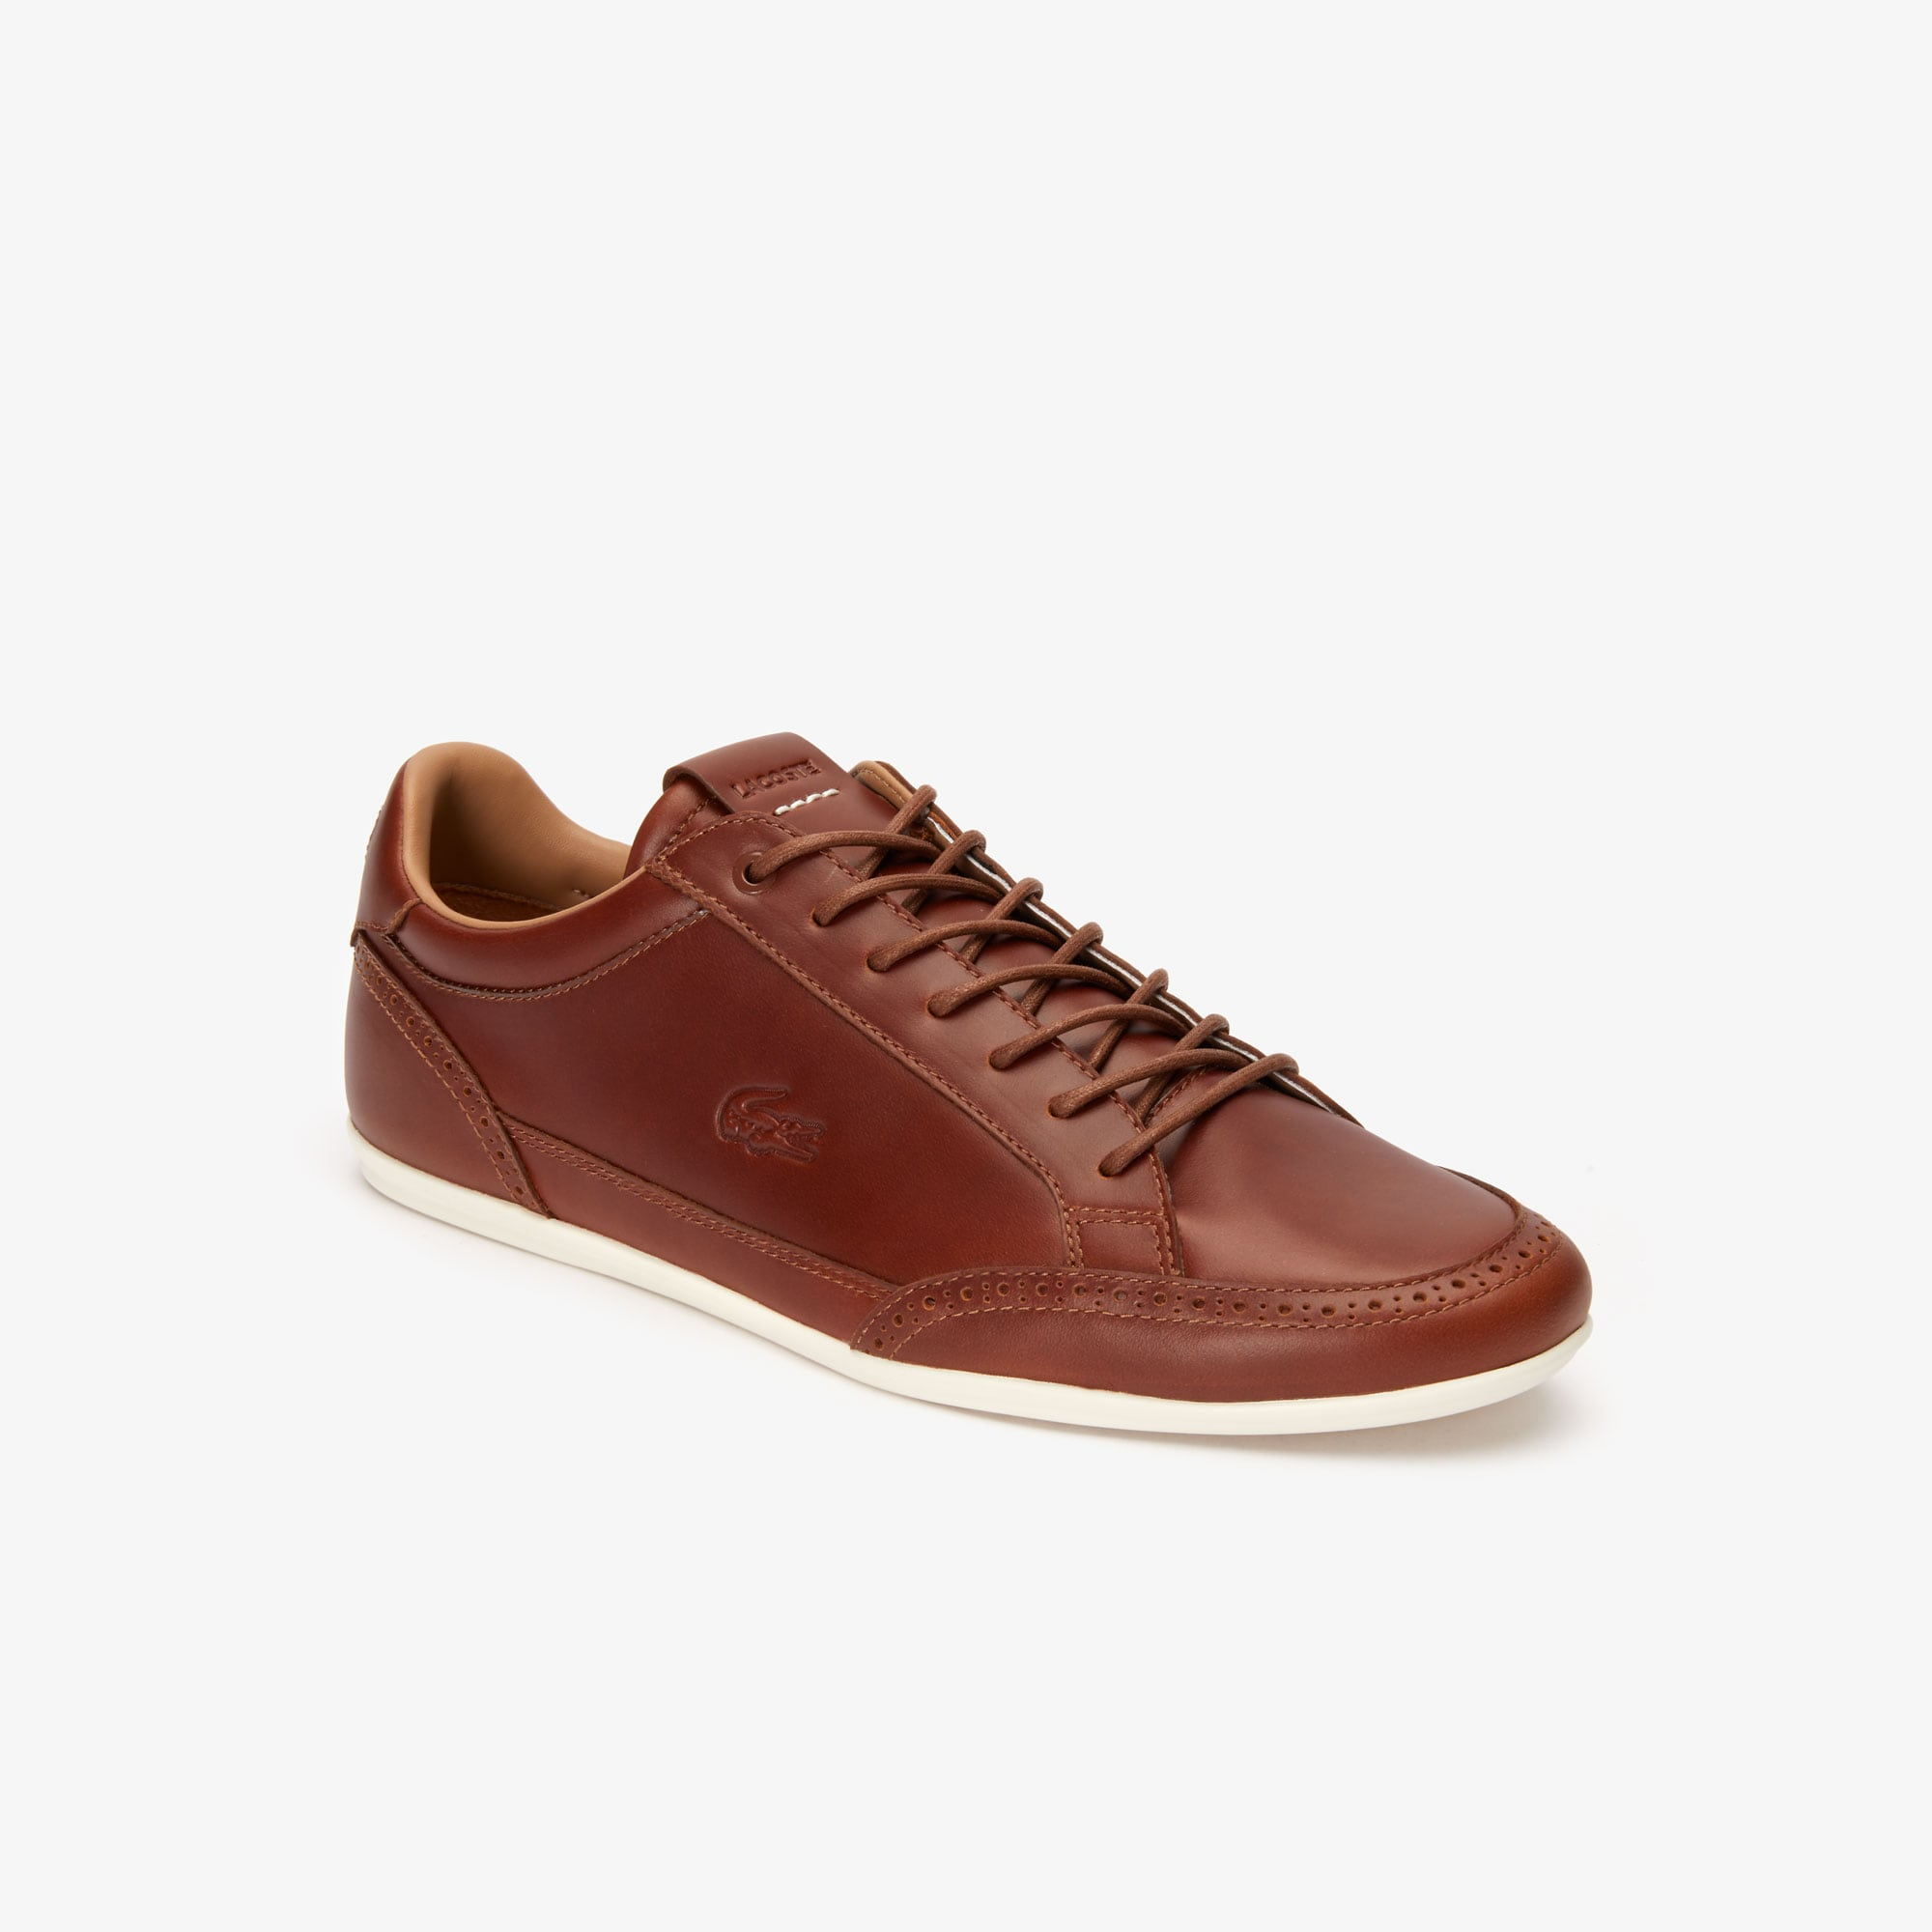 cab2152c4ae5 Lacoste shoes for men: Sneakers, Trainers, Boots   LACOSTE